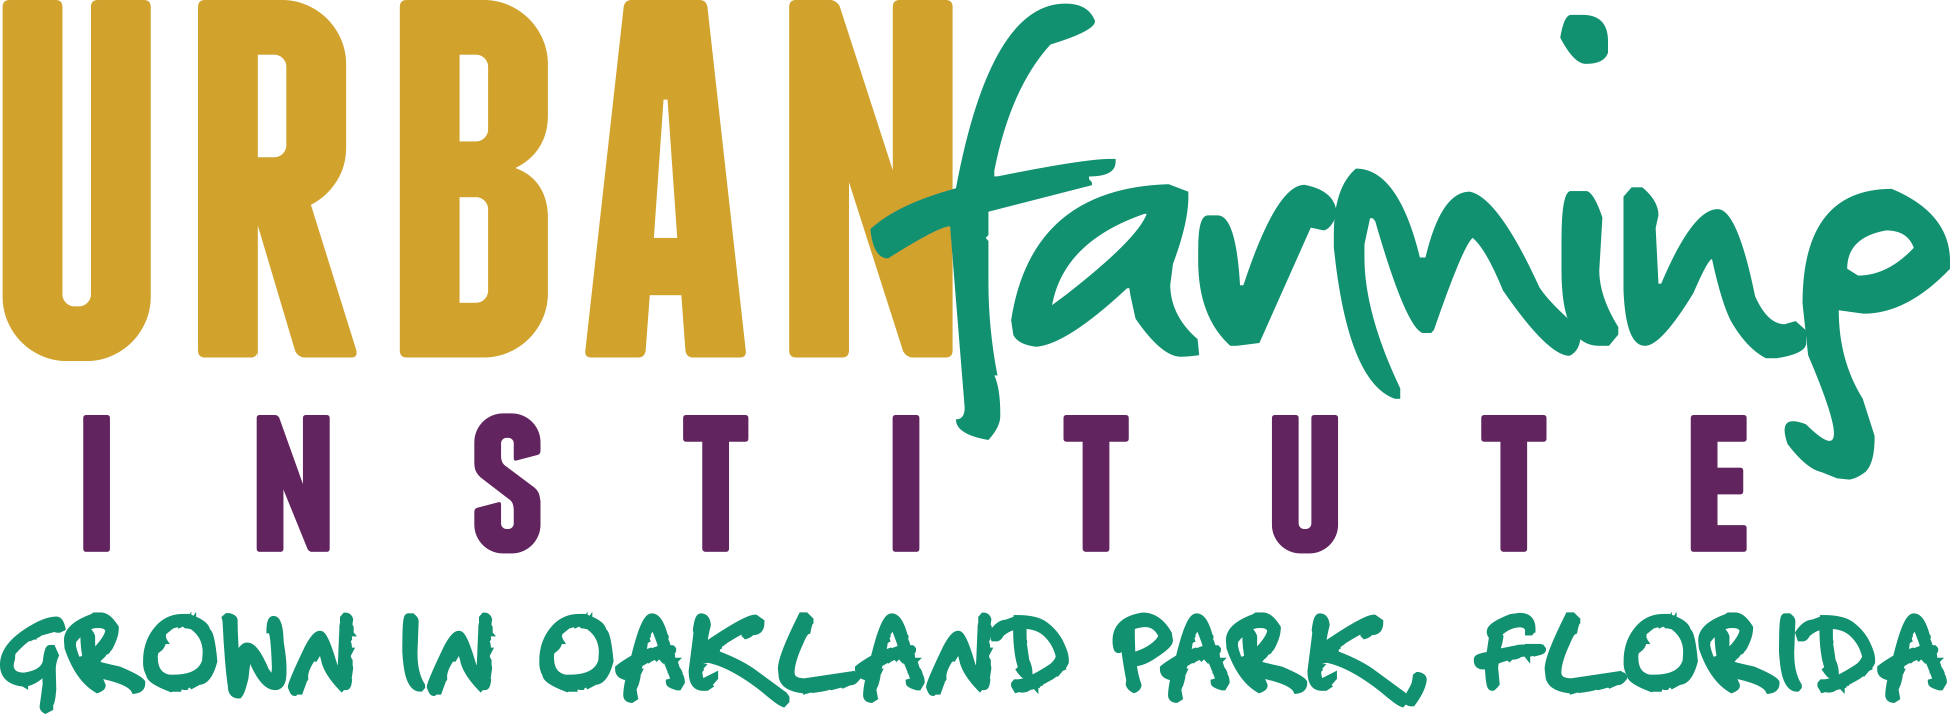 Urban Farming Institute Grown in Oakland Park